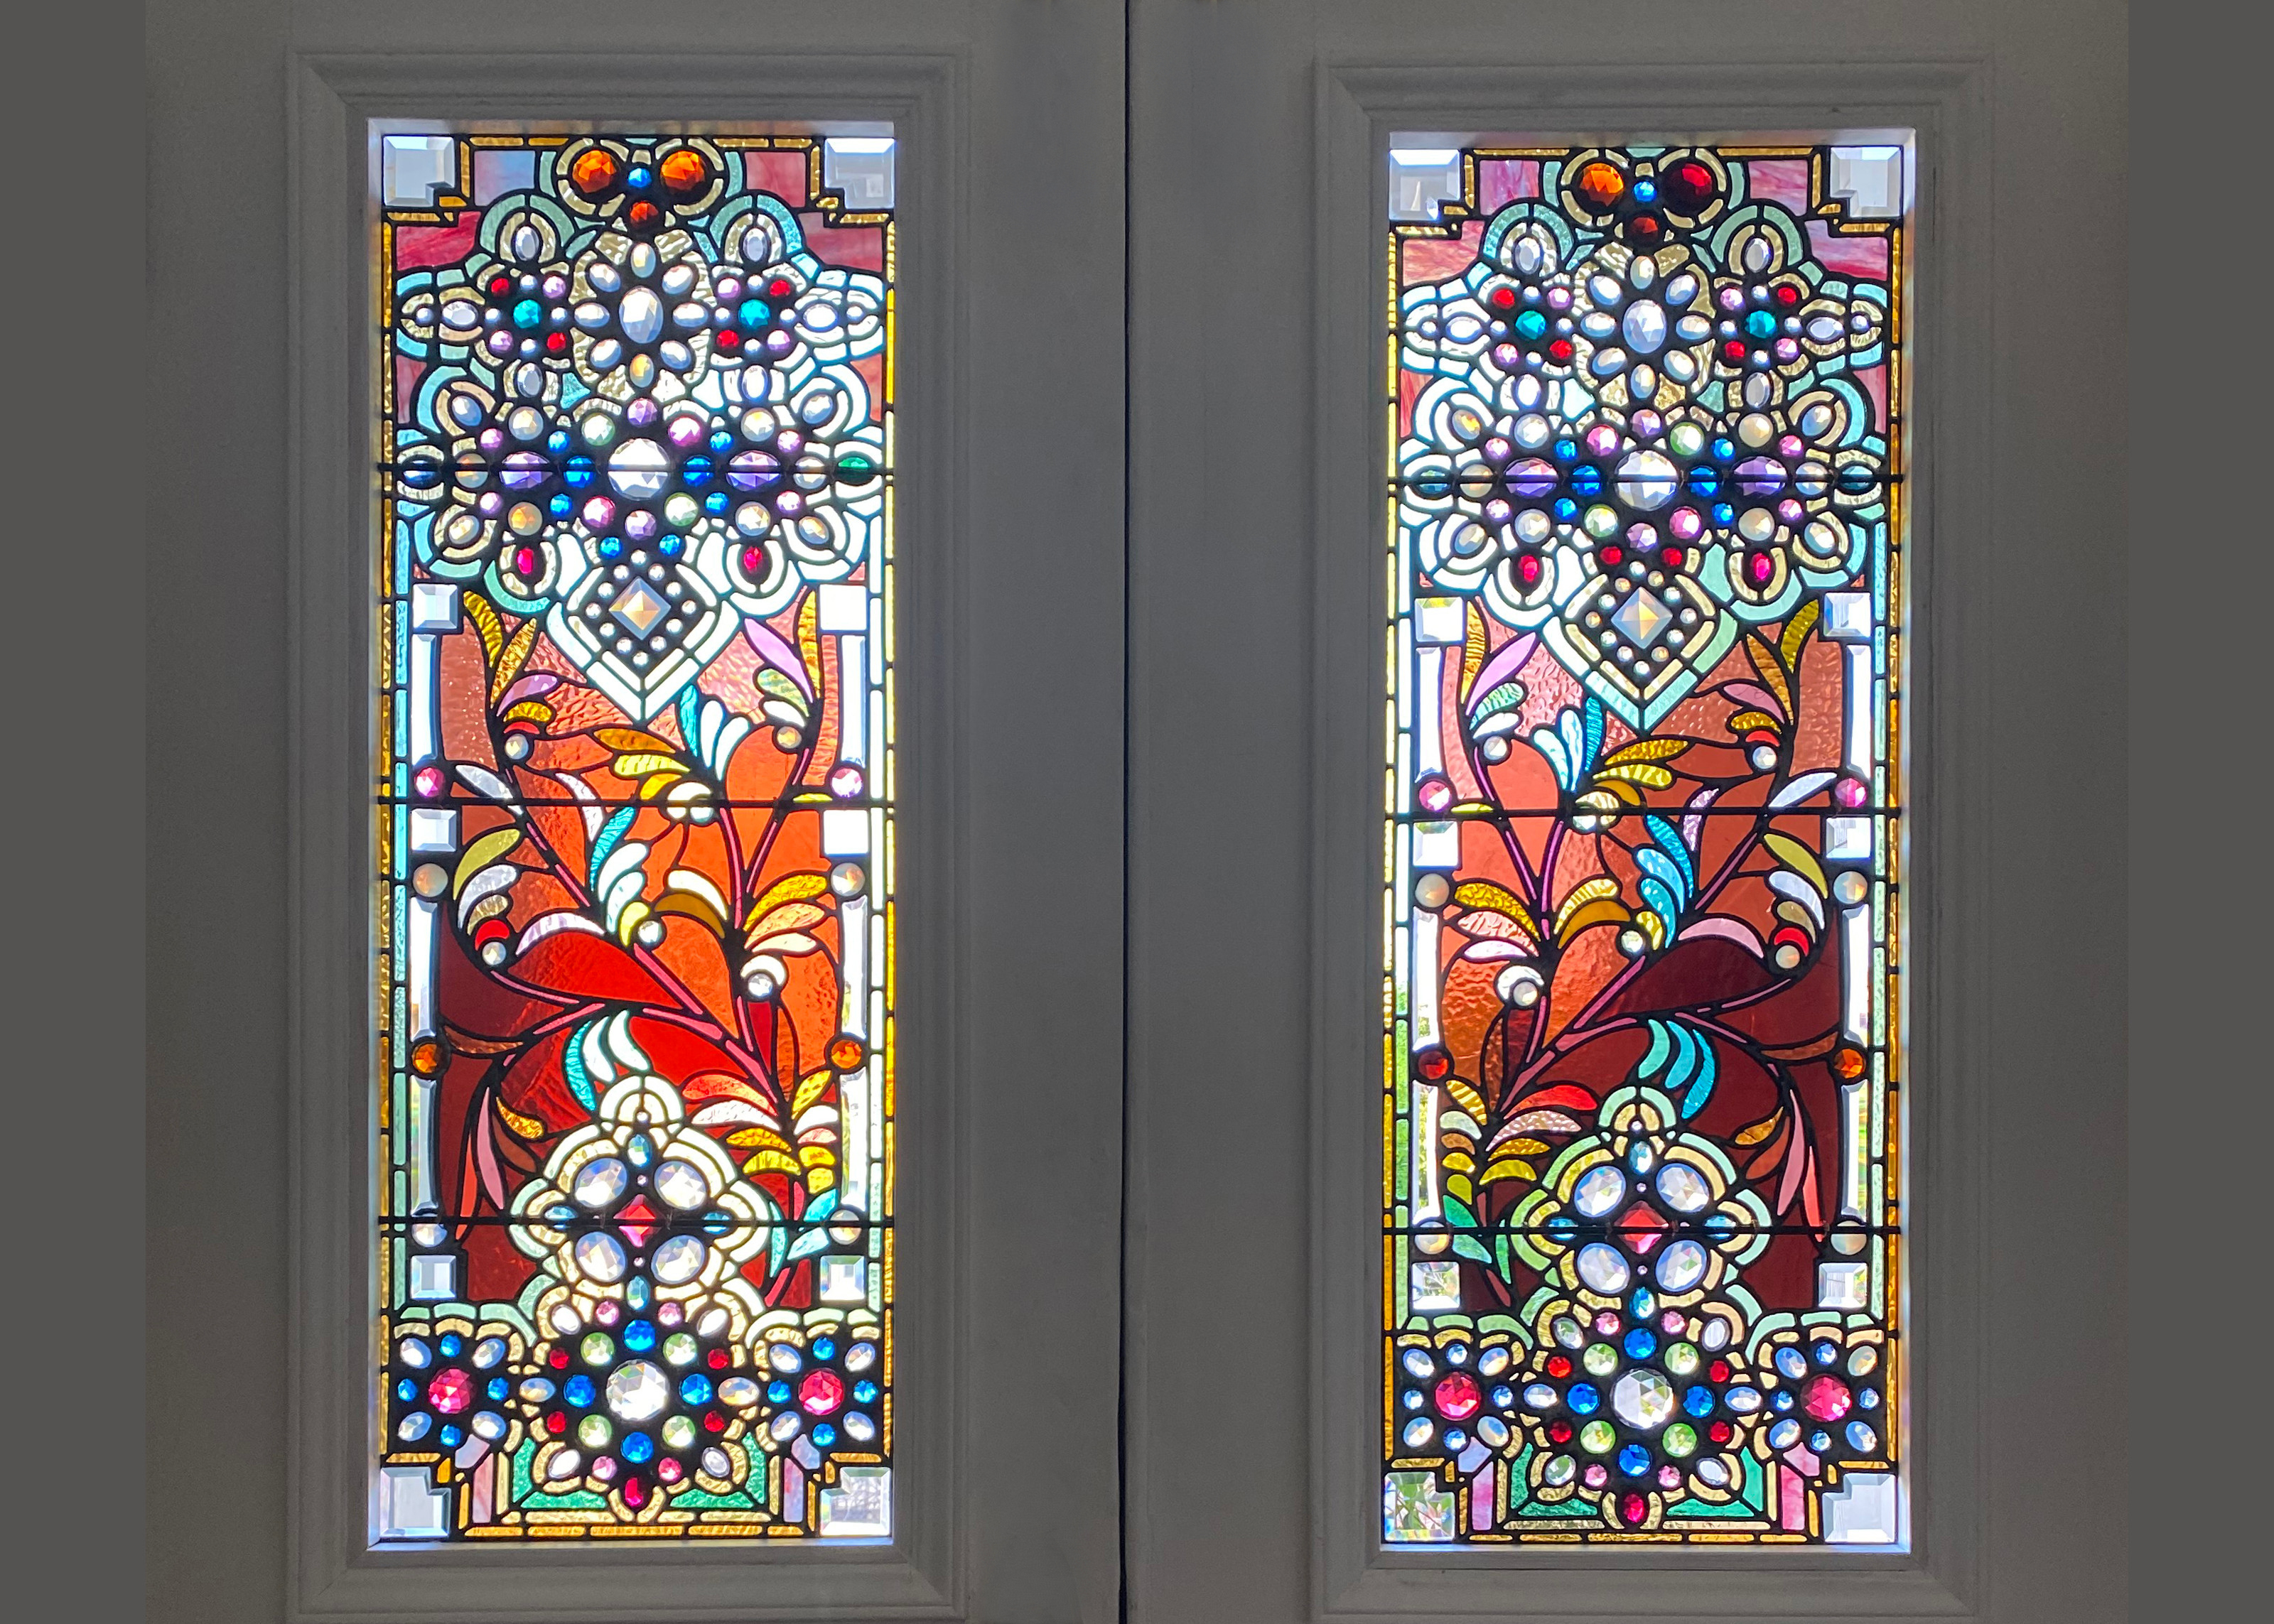 Restoration and repair of stained glass entry doors San Francisco, CA